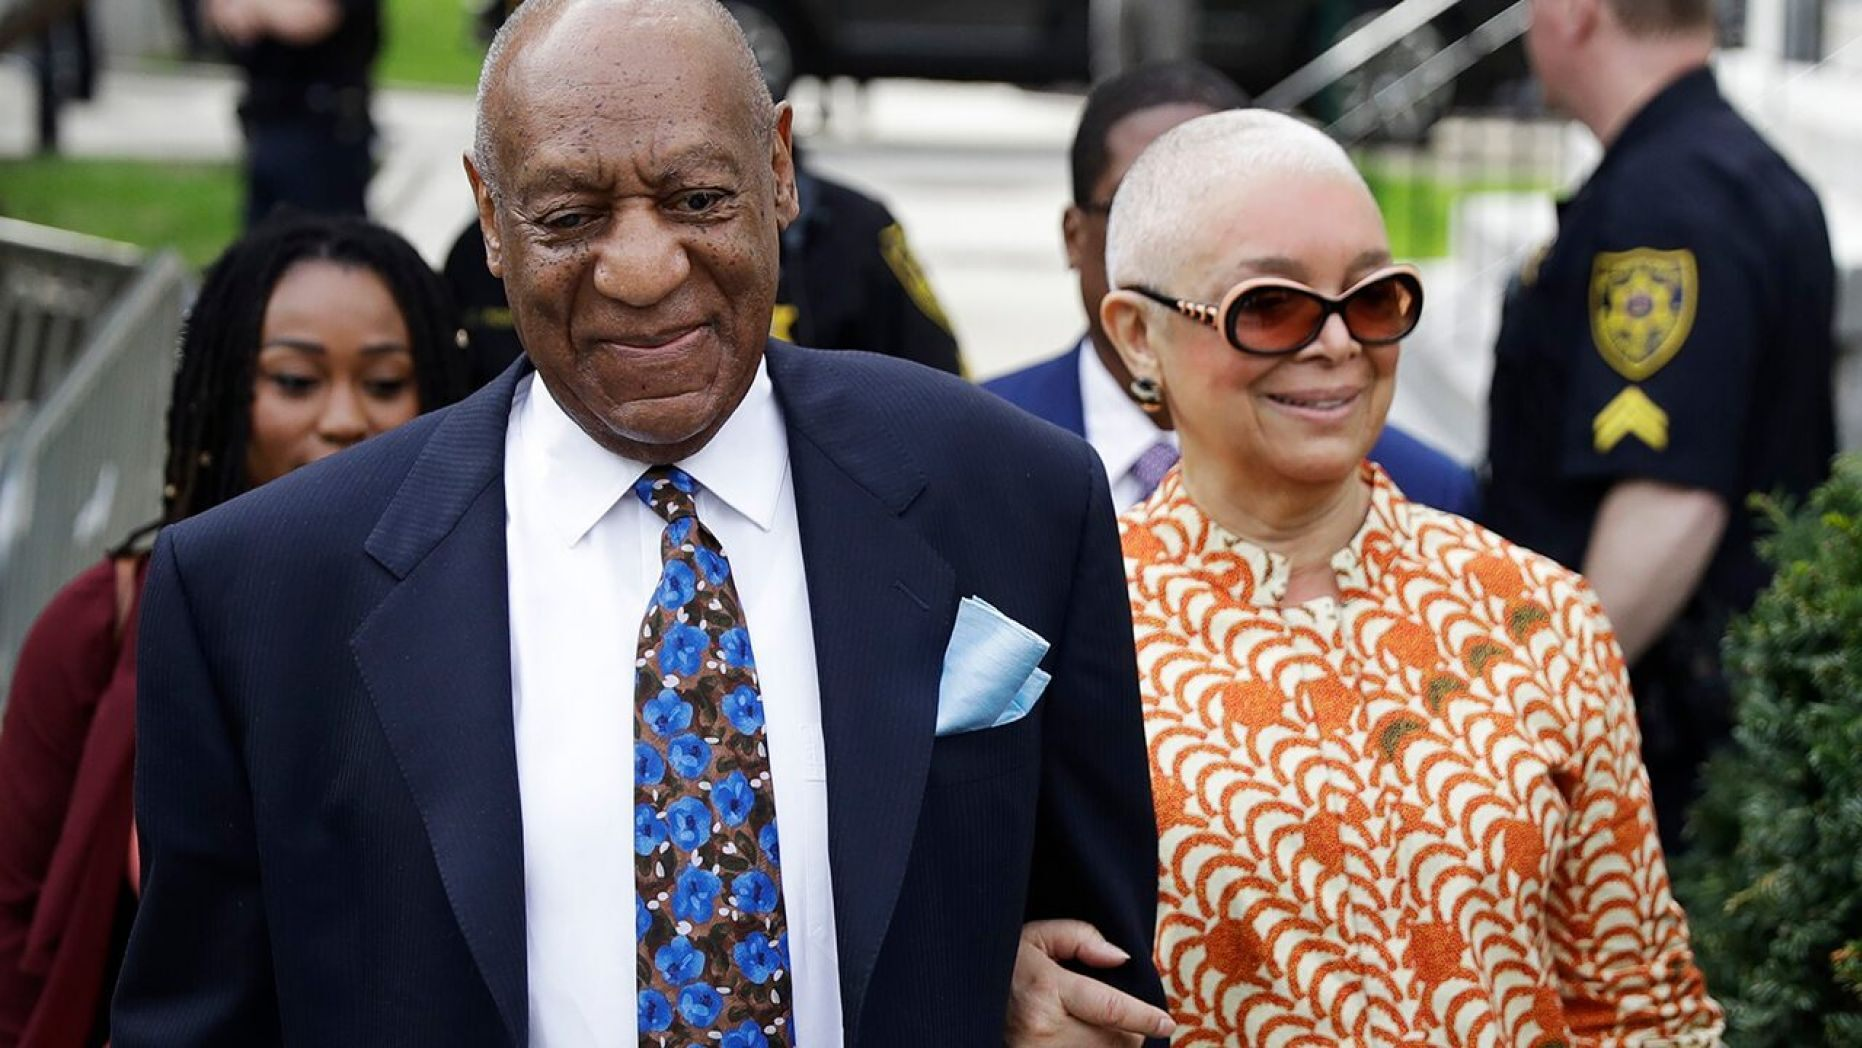 Westlake Legal Group BillCosbyAP Nancy Grace: Bill Cosby 'manipulating the justice system just like he manipulated all those women' Samuel Chamberlain fox-news/us/us-regions/northeast/pennsylvania fox-news/us/crime/sex-crimes fox-news/us/crime fox-news/topic/fox-nation-opinion fox-news/person/bill-cosby fox-news/opinion fox-news/fox-nation fox news fnc/media fnc e2daf89d-5d68-503a-b212-58b7aa2d792b article